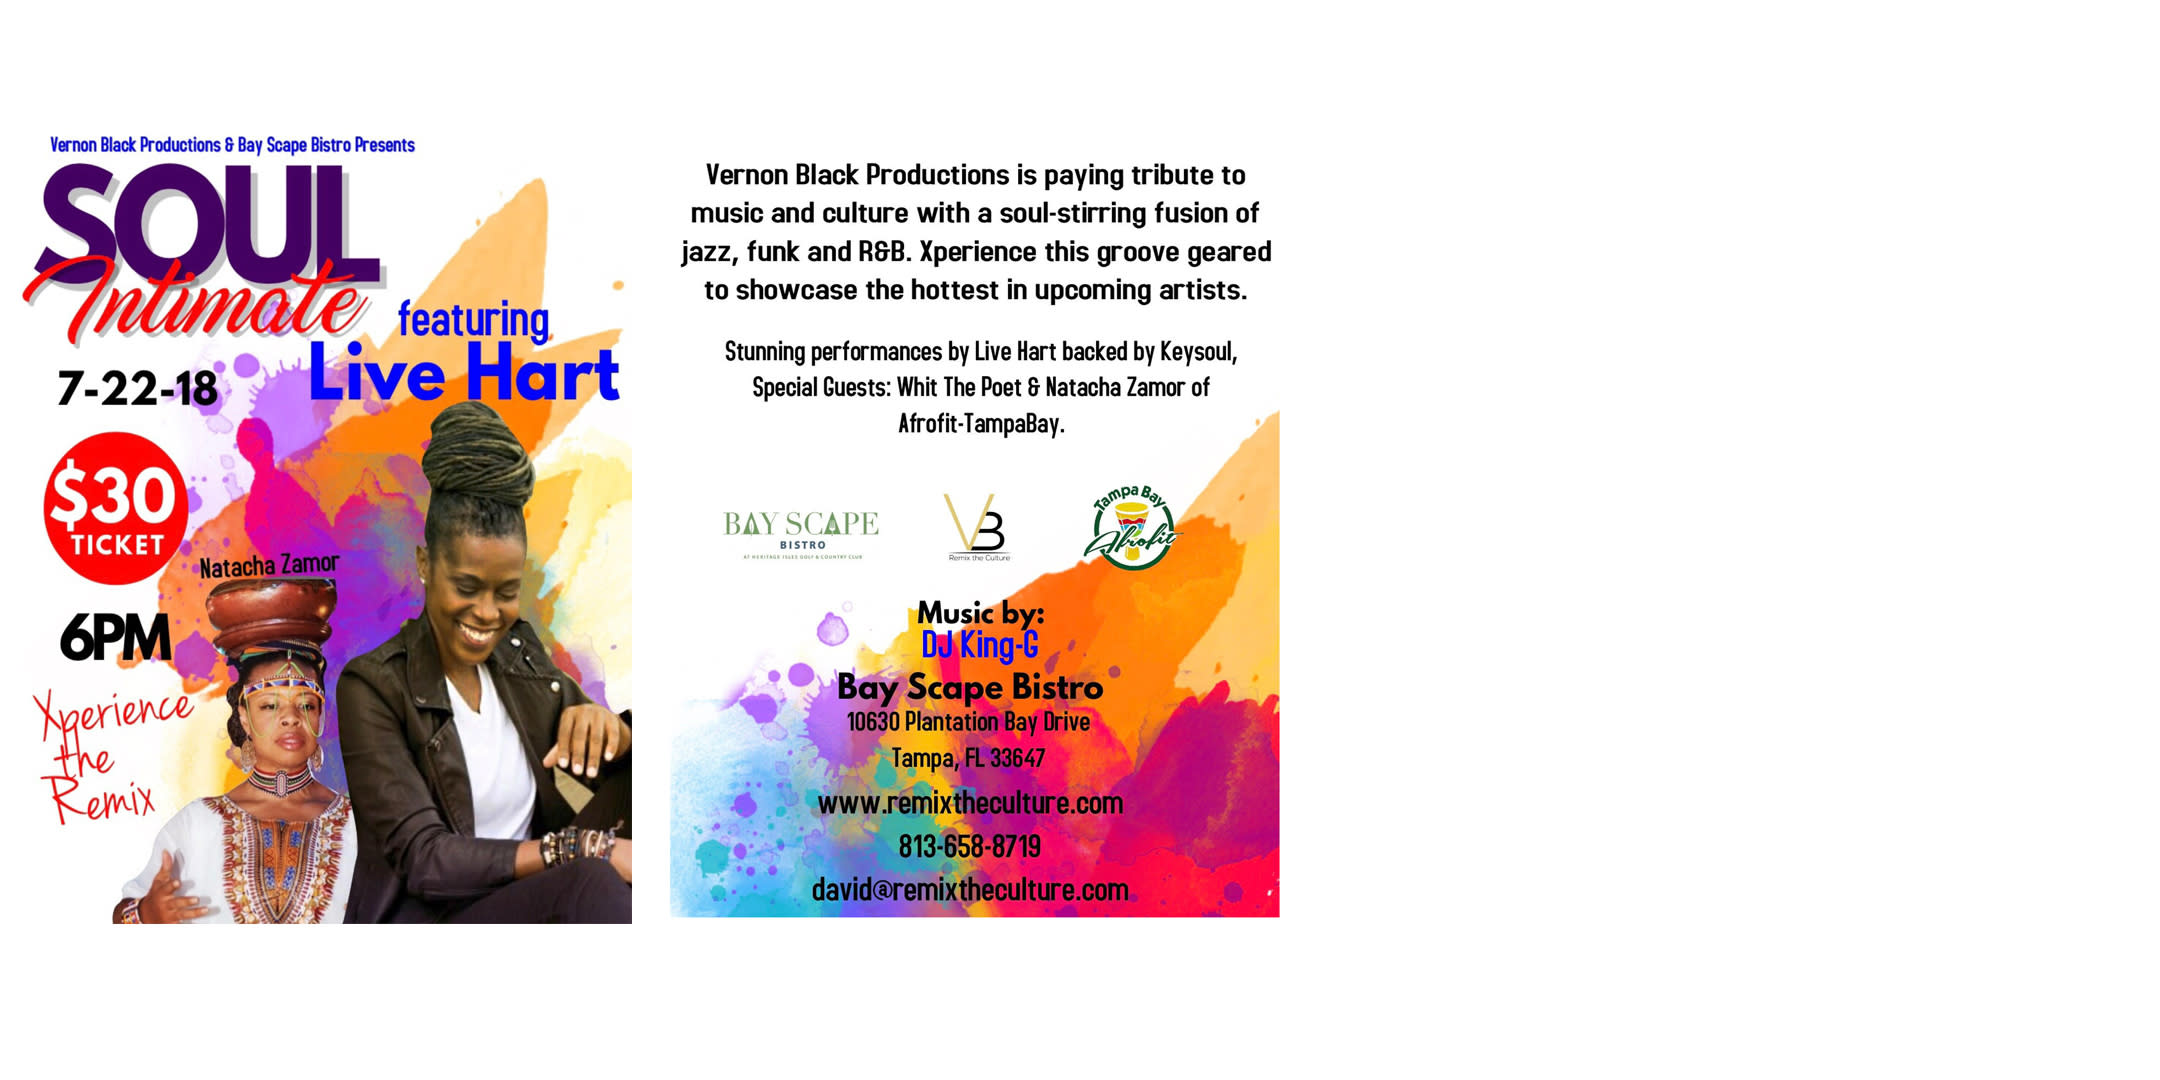 Vernon Black Productions & Bay Scape Bistro Presents: Soul Intimate featuring Live Hart